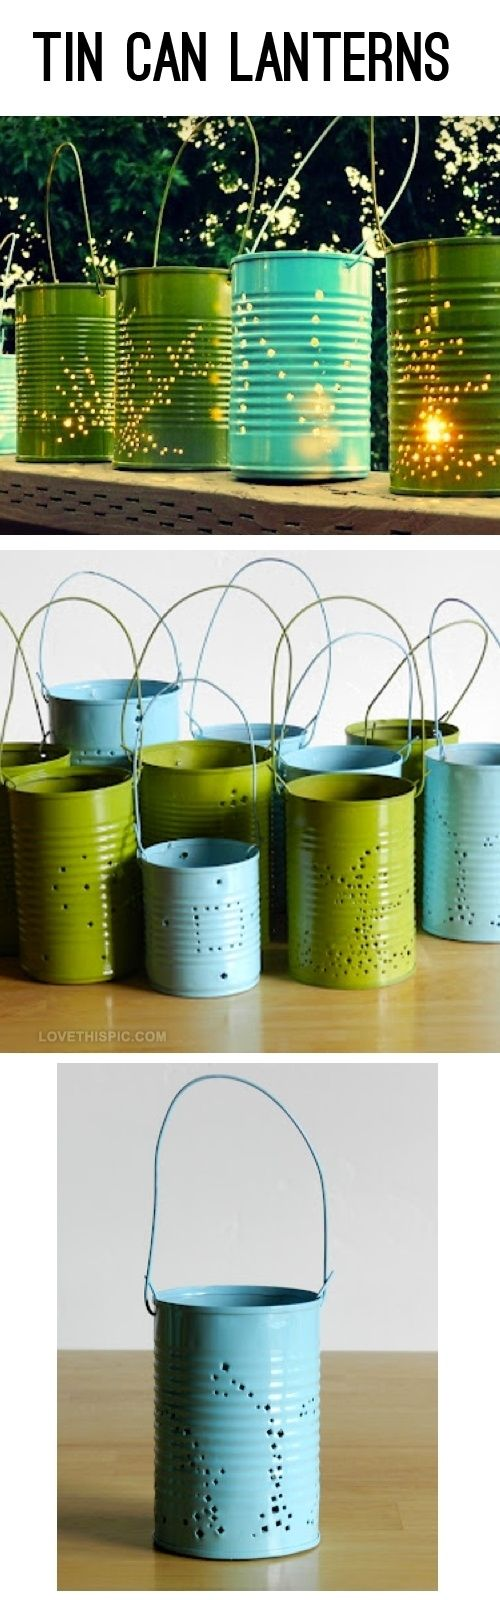 tin can lanterns candles diy crafts... I like actual lanterns but I thought I'd pin it just in case. Maybe a shower?